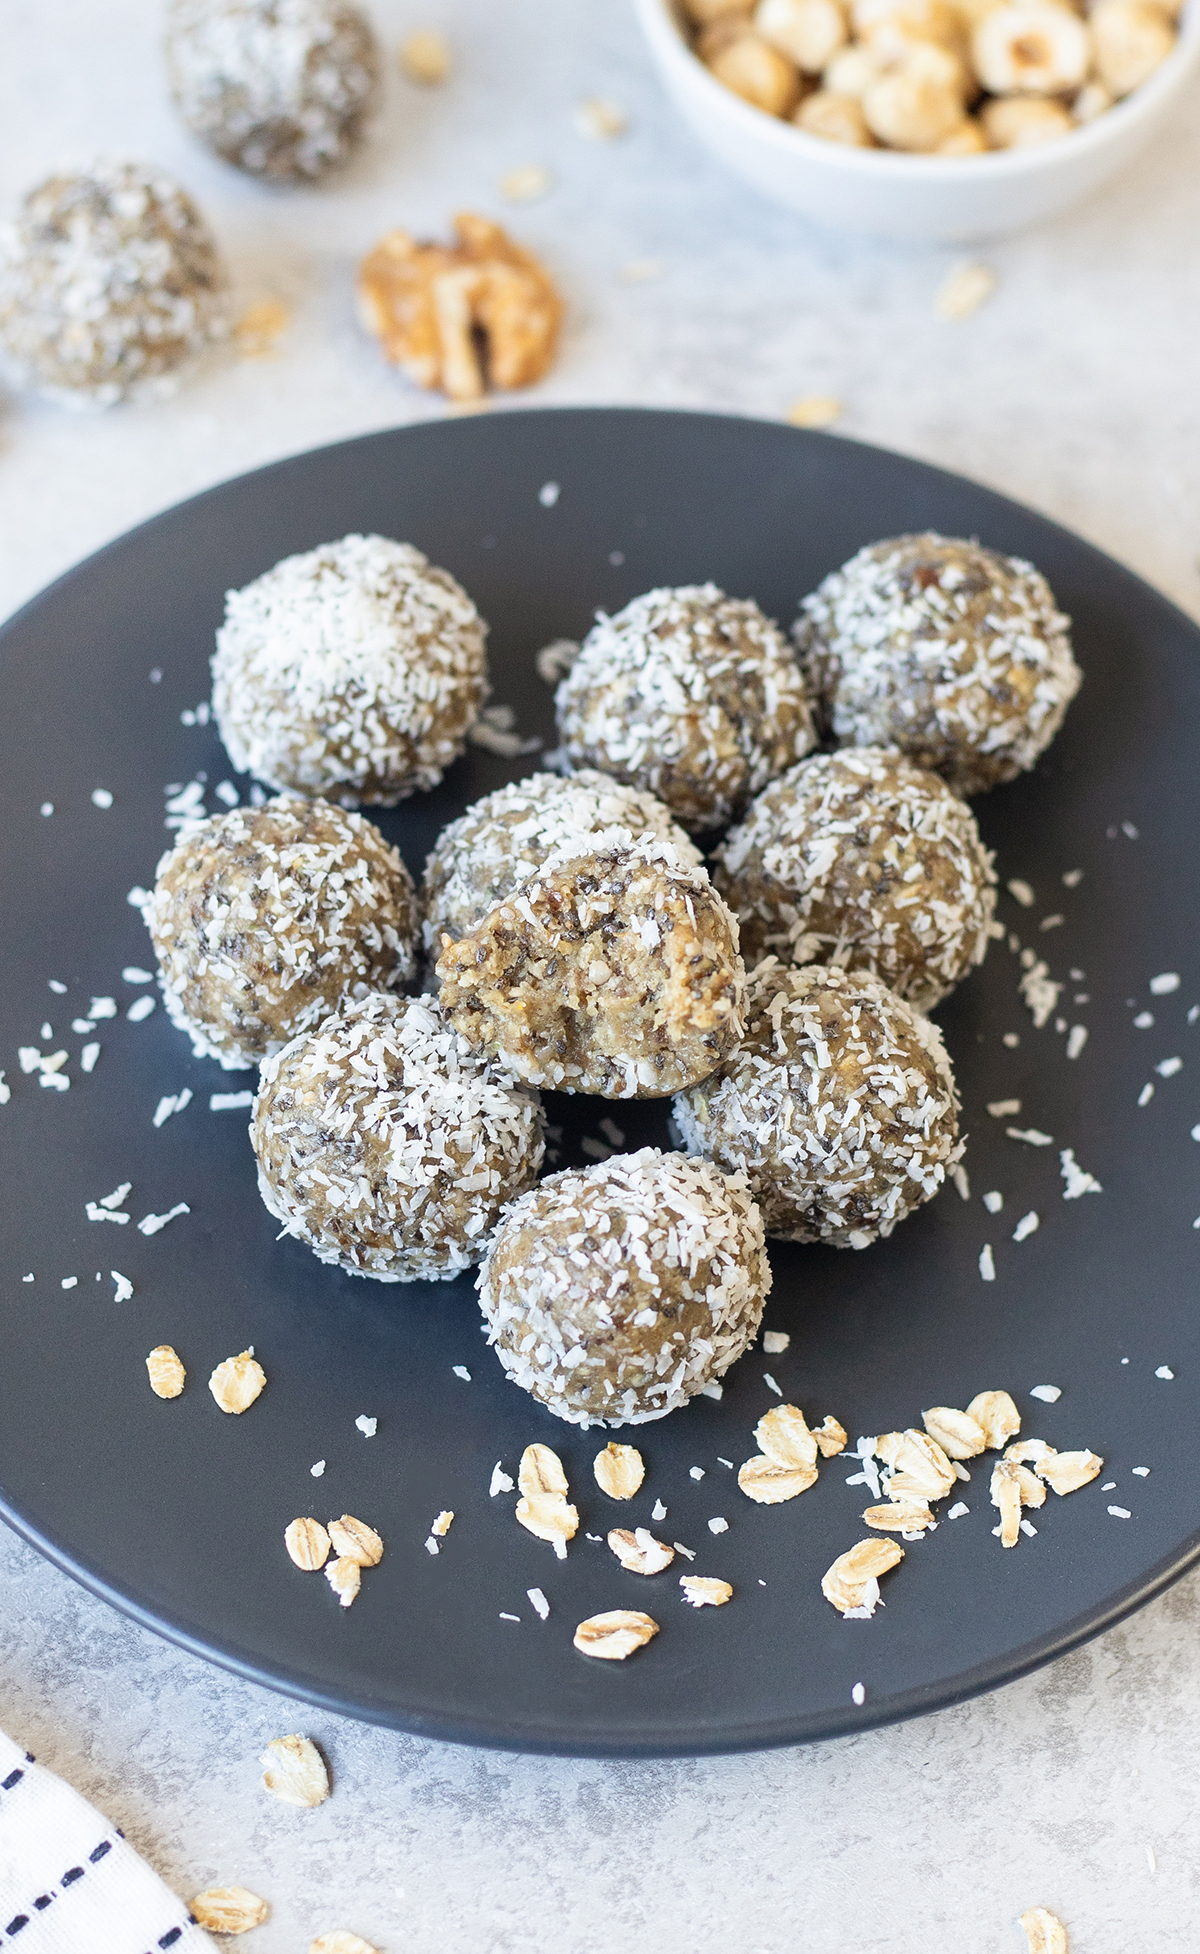 no-bake power balls are so nutritious, made with super healthy food